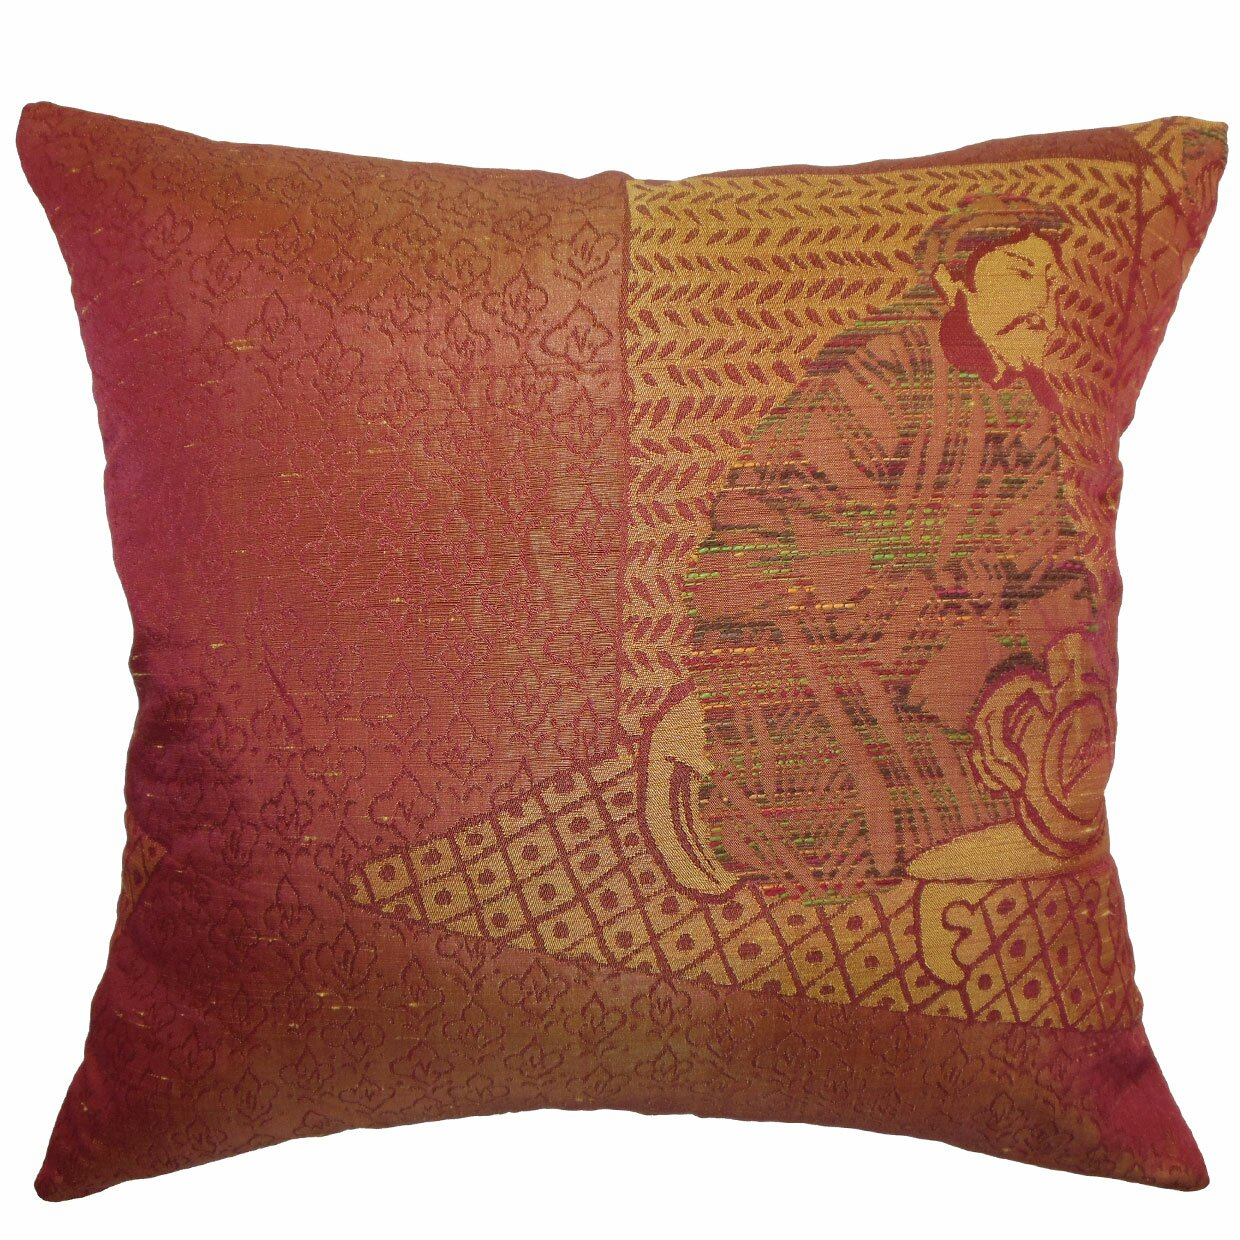 Traditional Throw Pillows : The Pillow Collection Harb Traditional Throw Pillow Wayfair